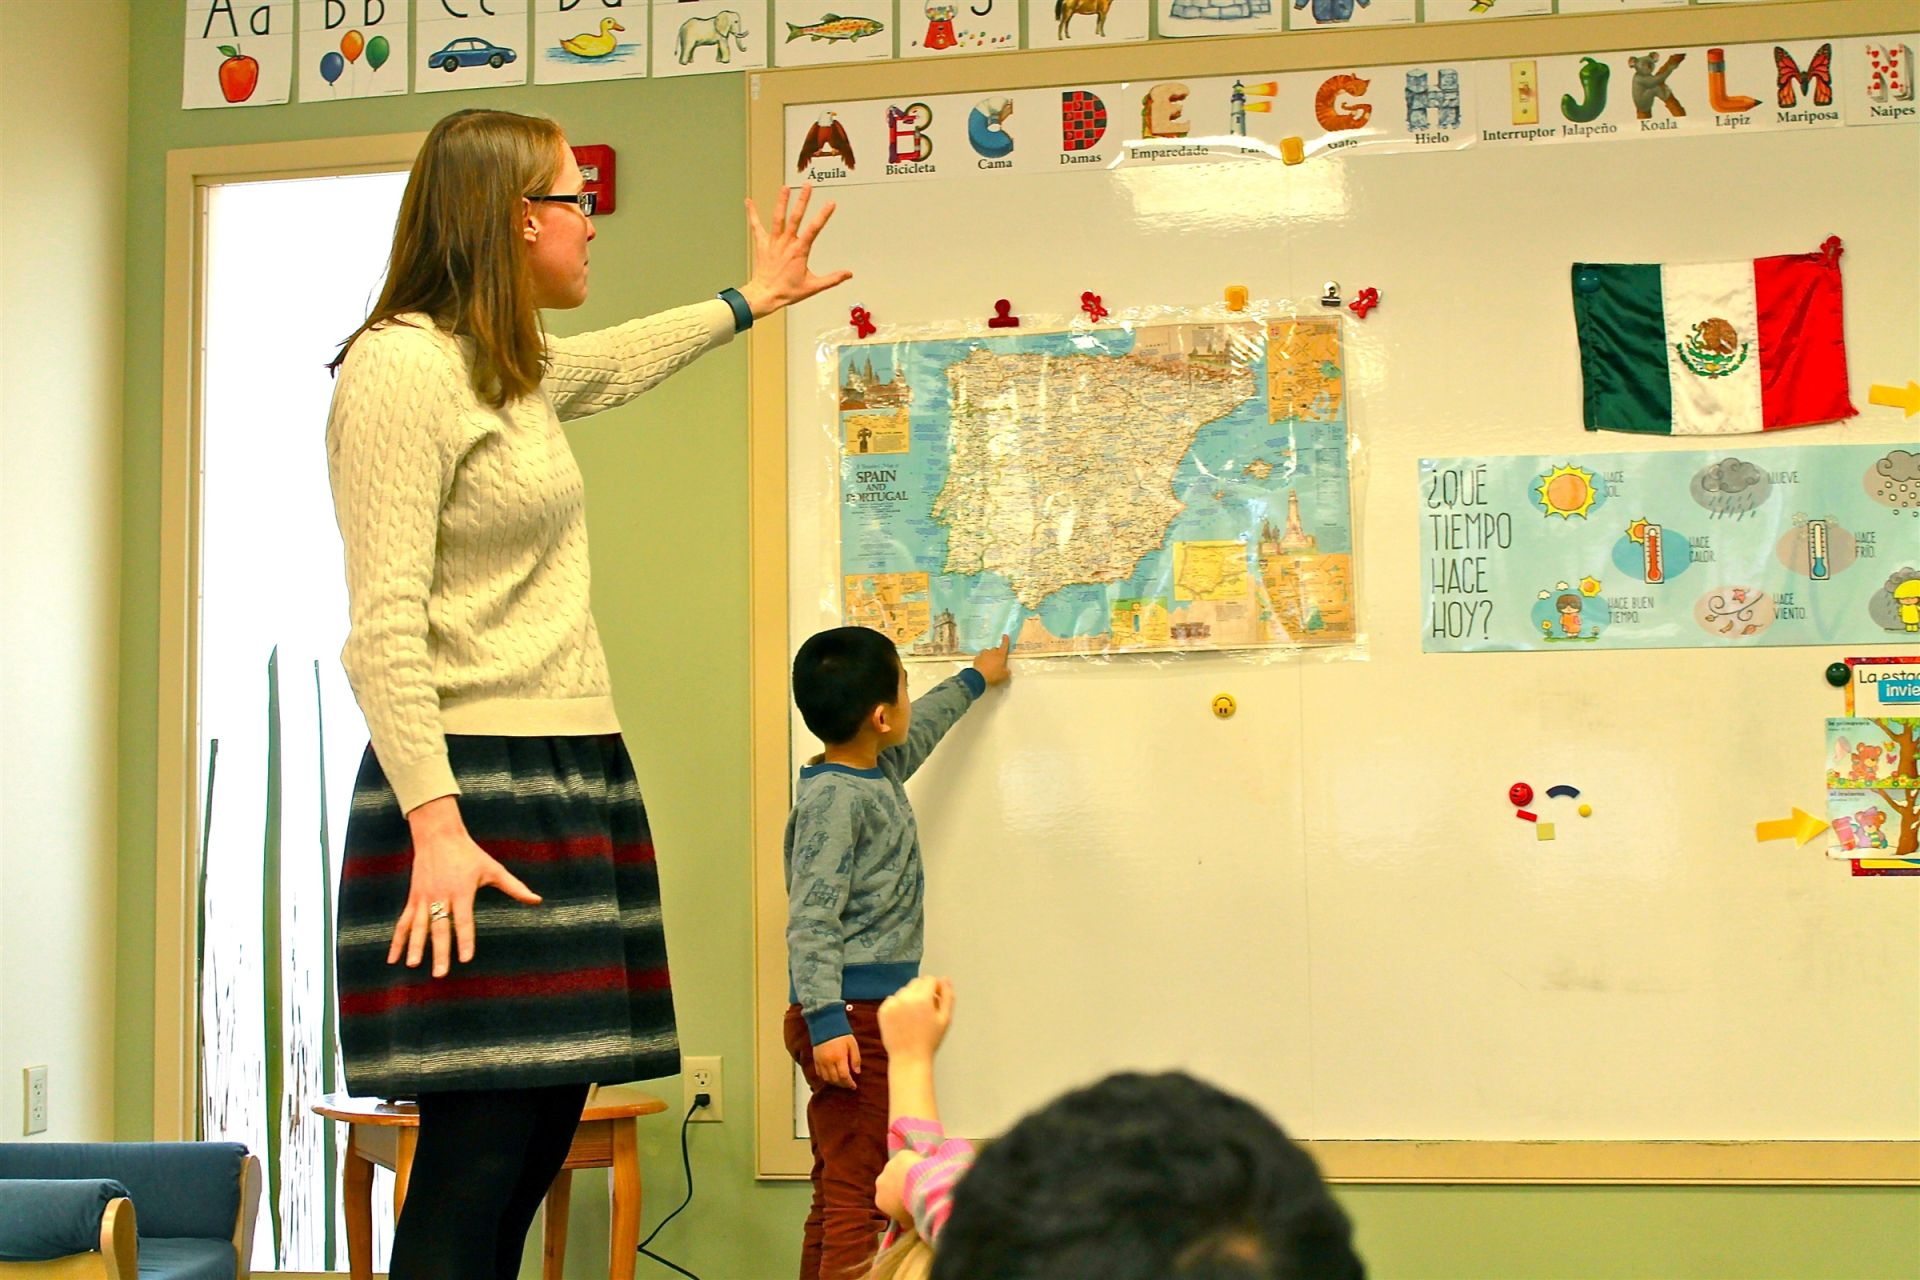 Fay's Primary School World Language program is built around the F.L.E.X. (Foreign Language Experience) approach. Beginning in Kindergarten, students spend the first half of the year learning Spanish and the second half of the year learning French. They learn basic greetings and common expressions as well as basic vocabulary for numbers, days of the week, body parts, and shapes. Students also learn about the cultural traditions and celebrations of Hispanic and Francophone countries around the world.